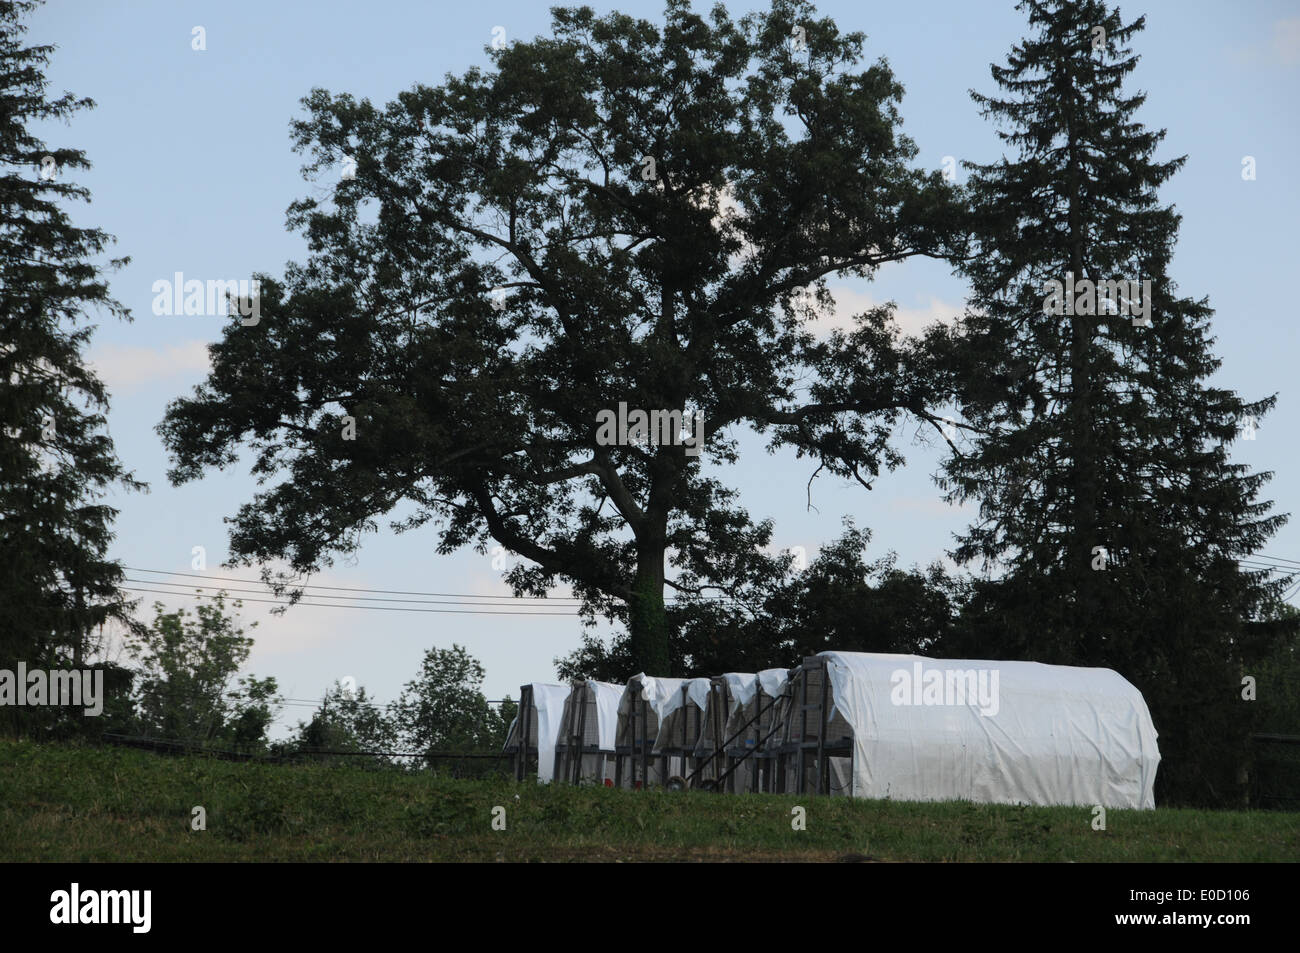 Farm chicken houses oak pine evergreen trees - Stock Image